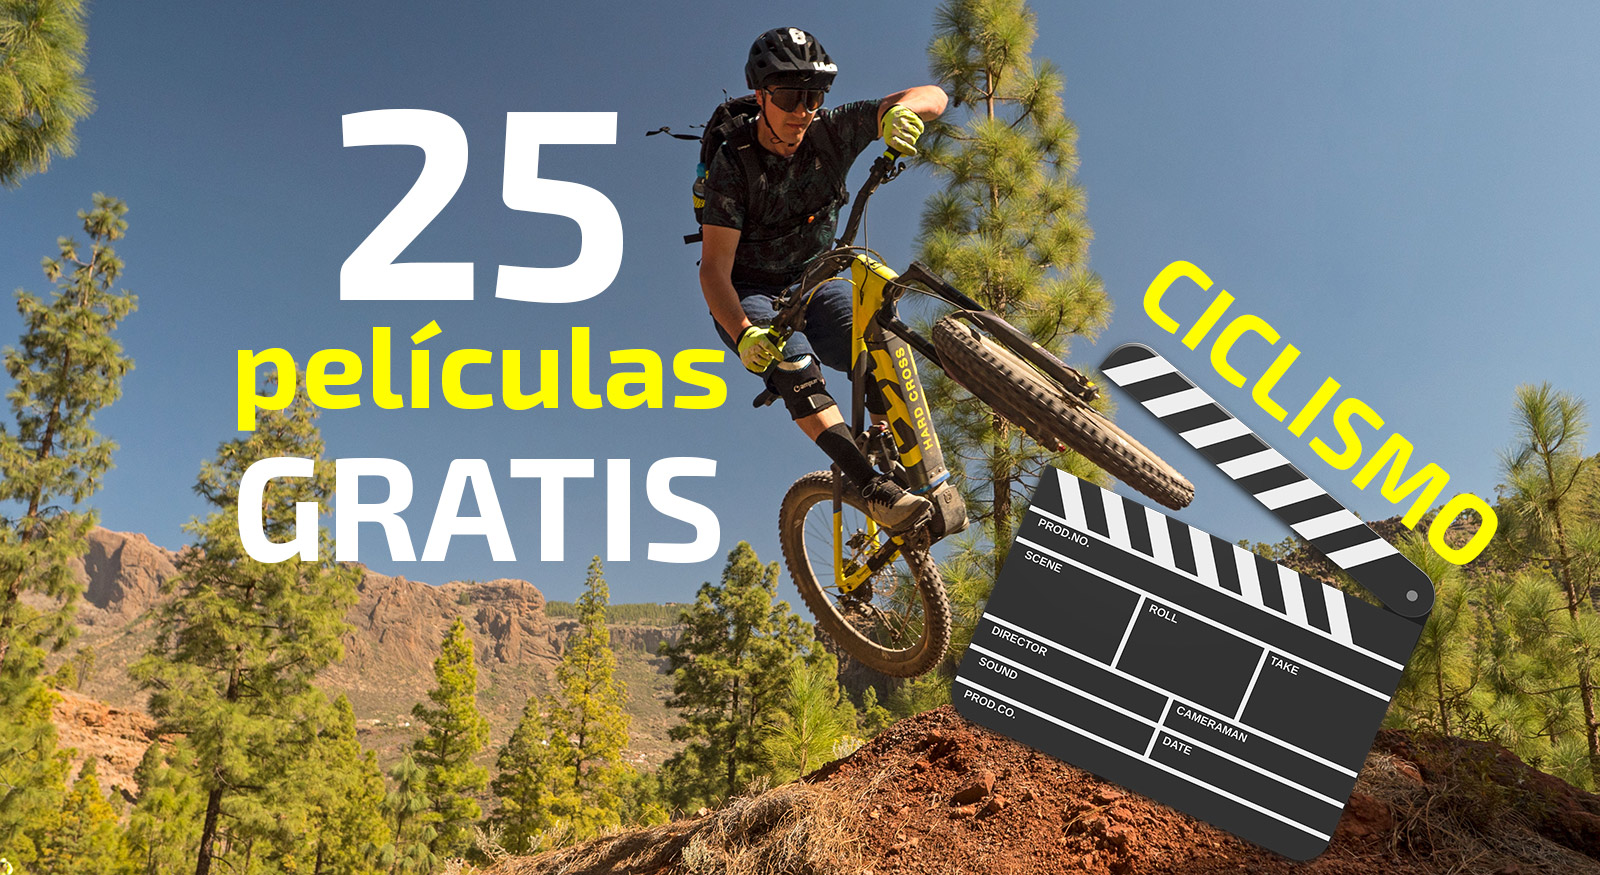 25-películas-gratis-de-ciclismo,-mountain-bike,-BMX,-Gravel-bicicleta-movie